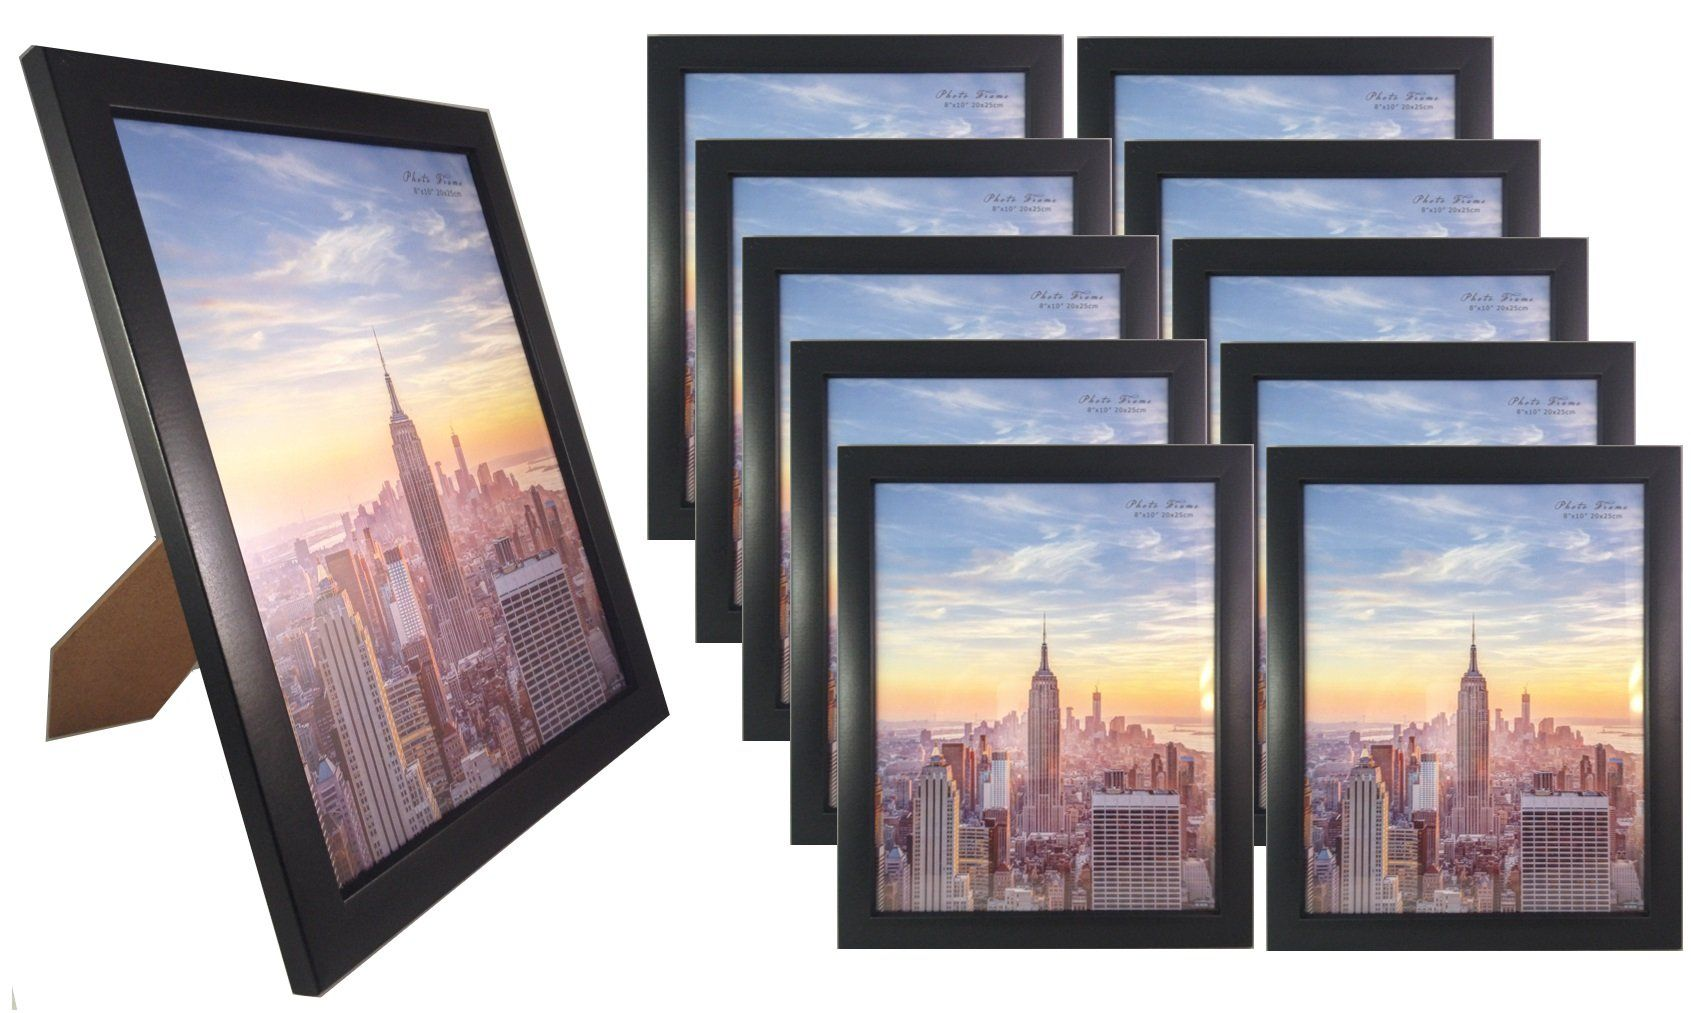 Black 5x7, 8x10, 11x14 Contemporary Wood Picture Photo Frame, 10 ...